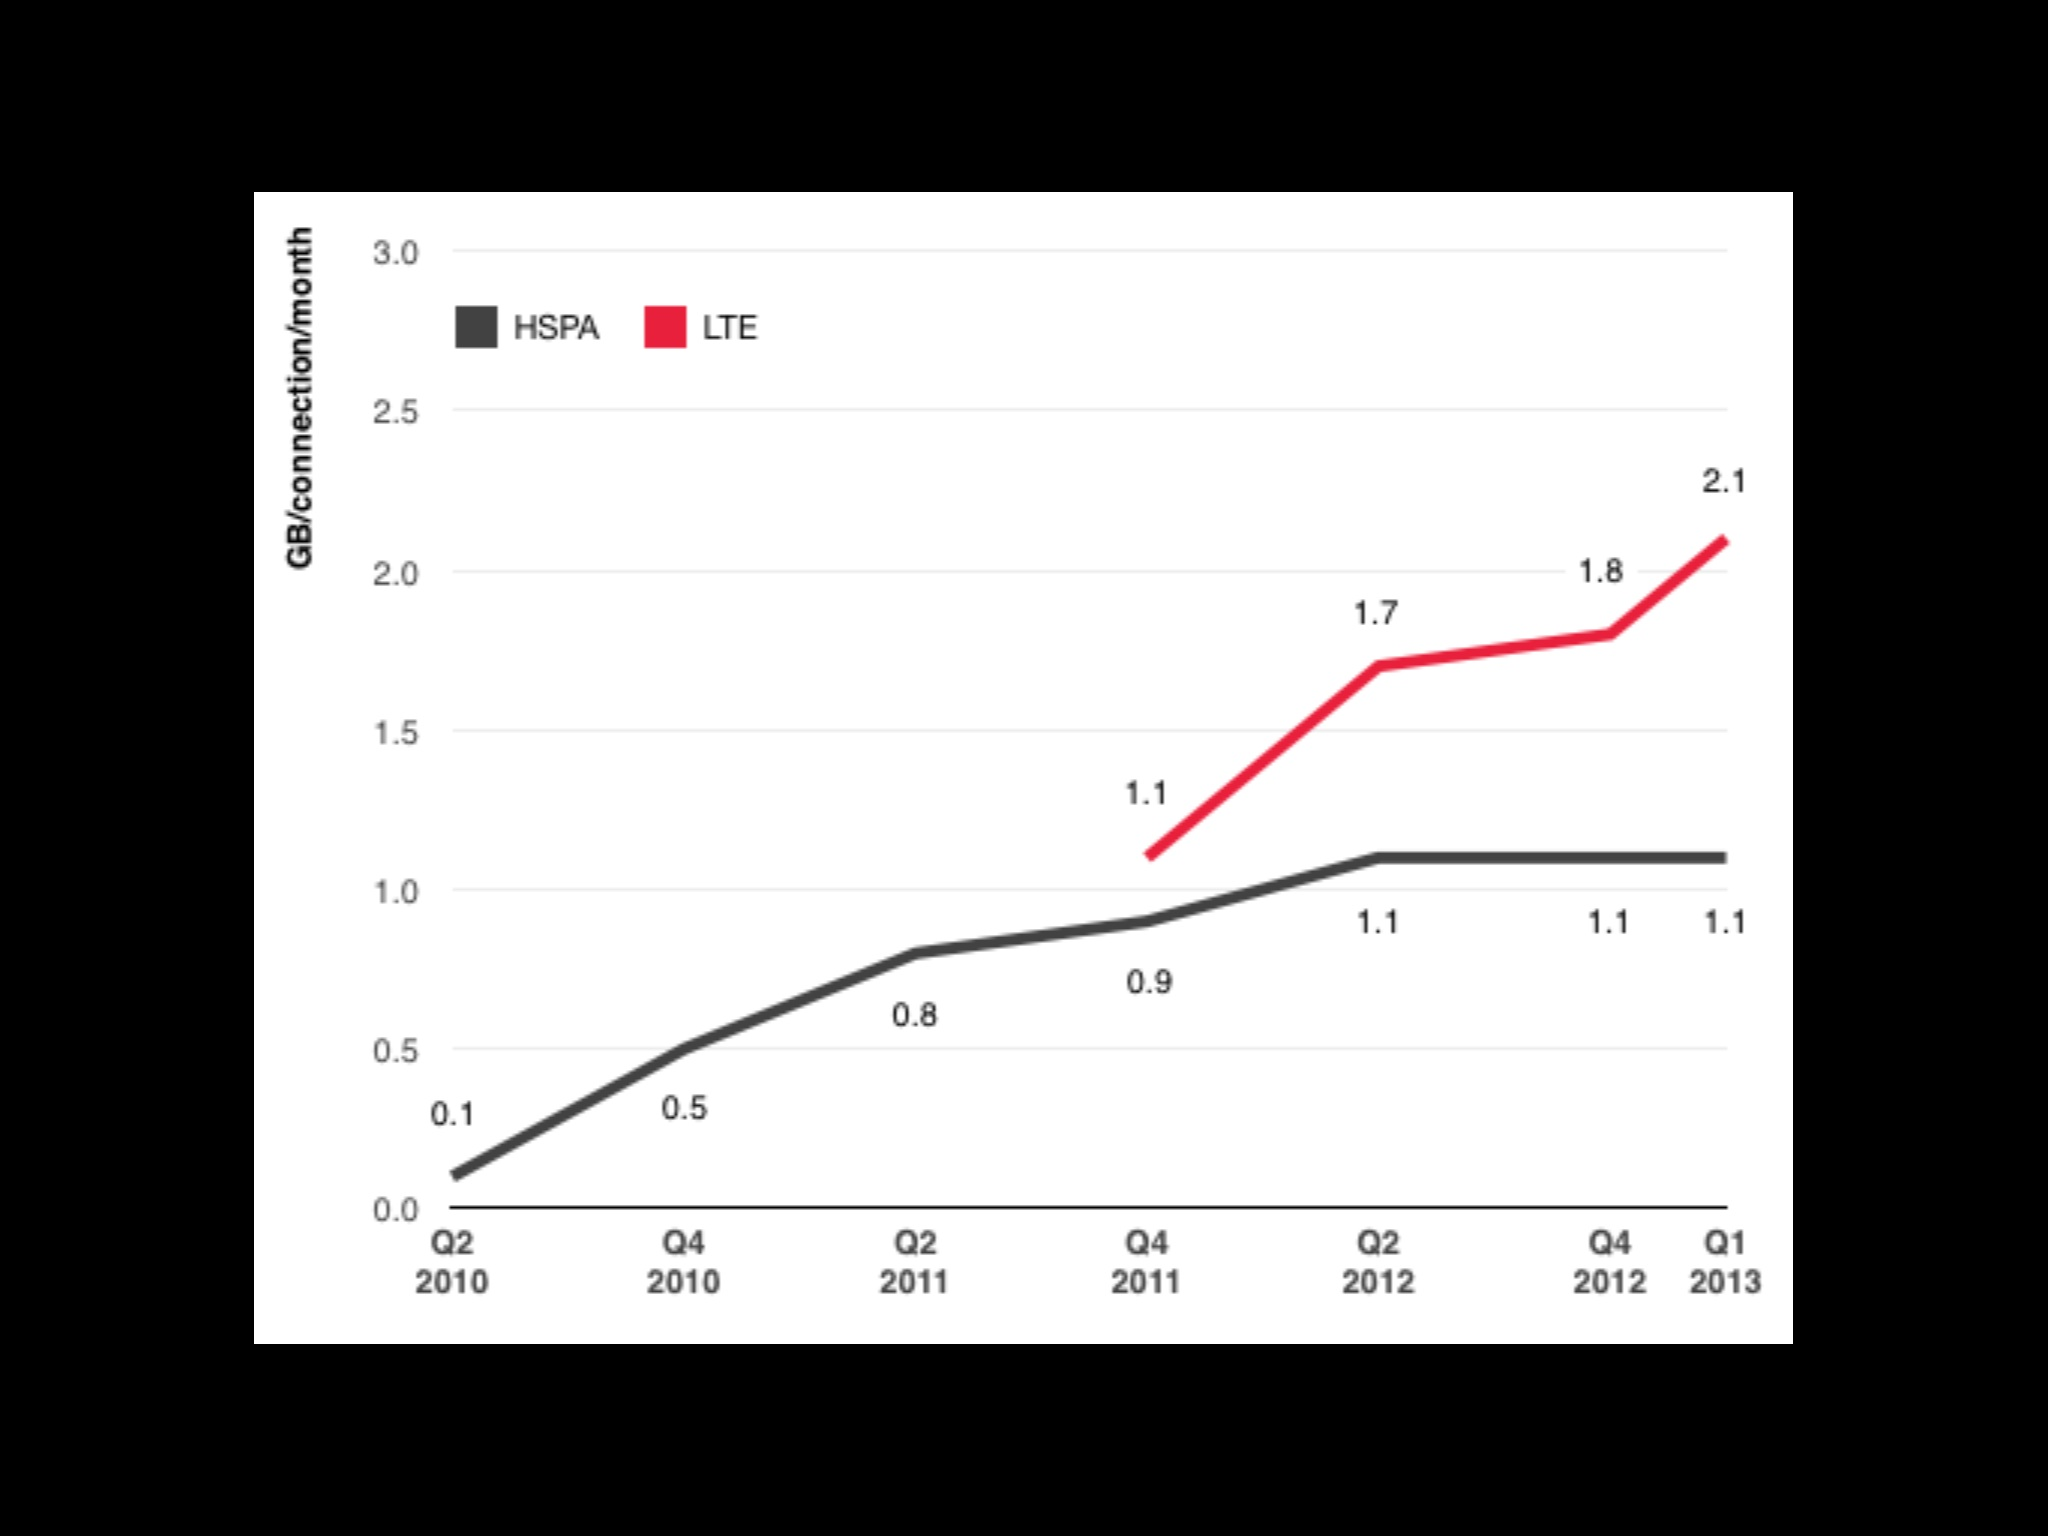 Average connection speed per month - GSMA Intelligence